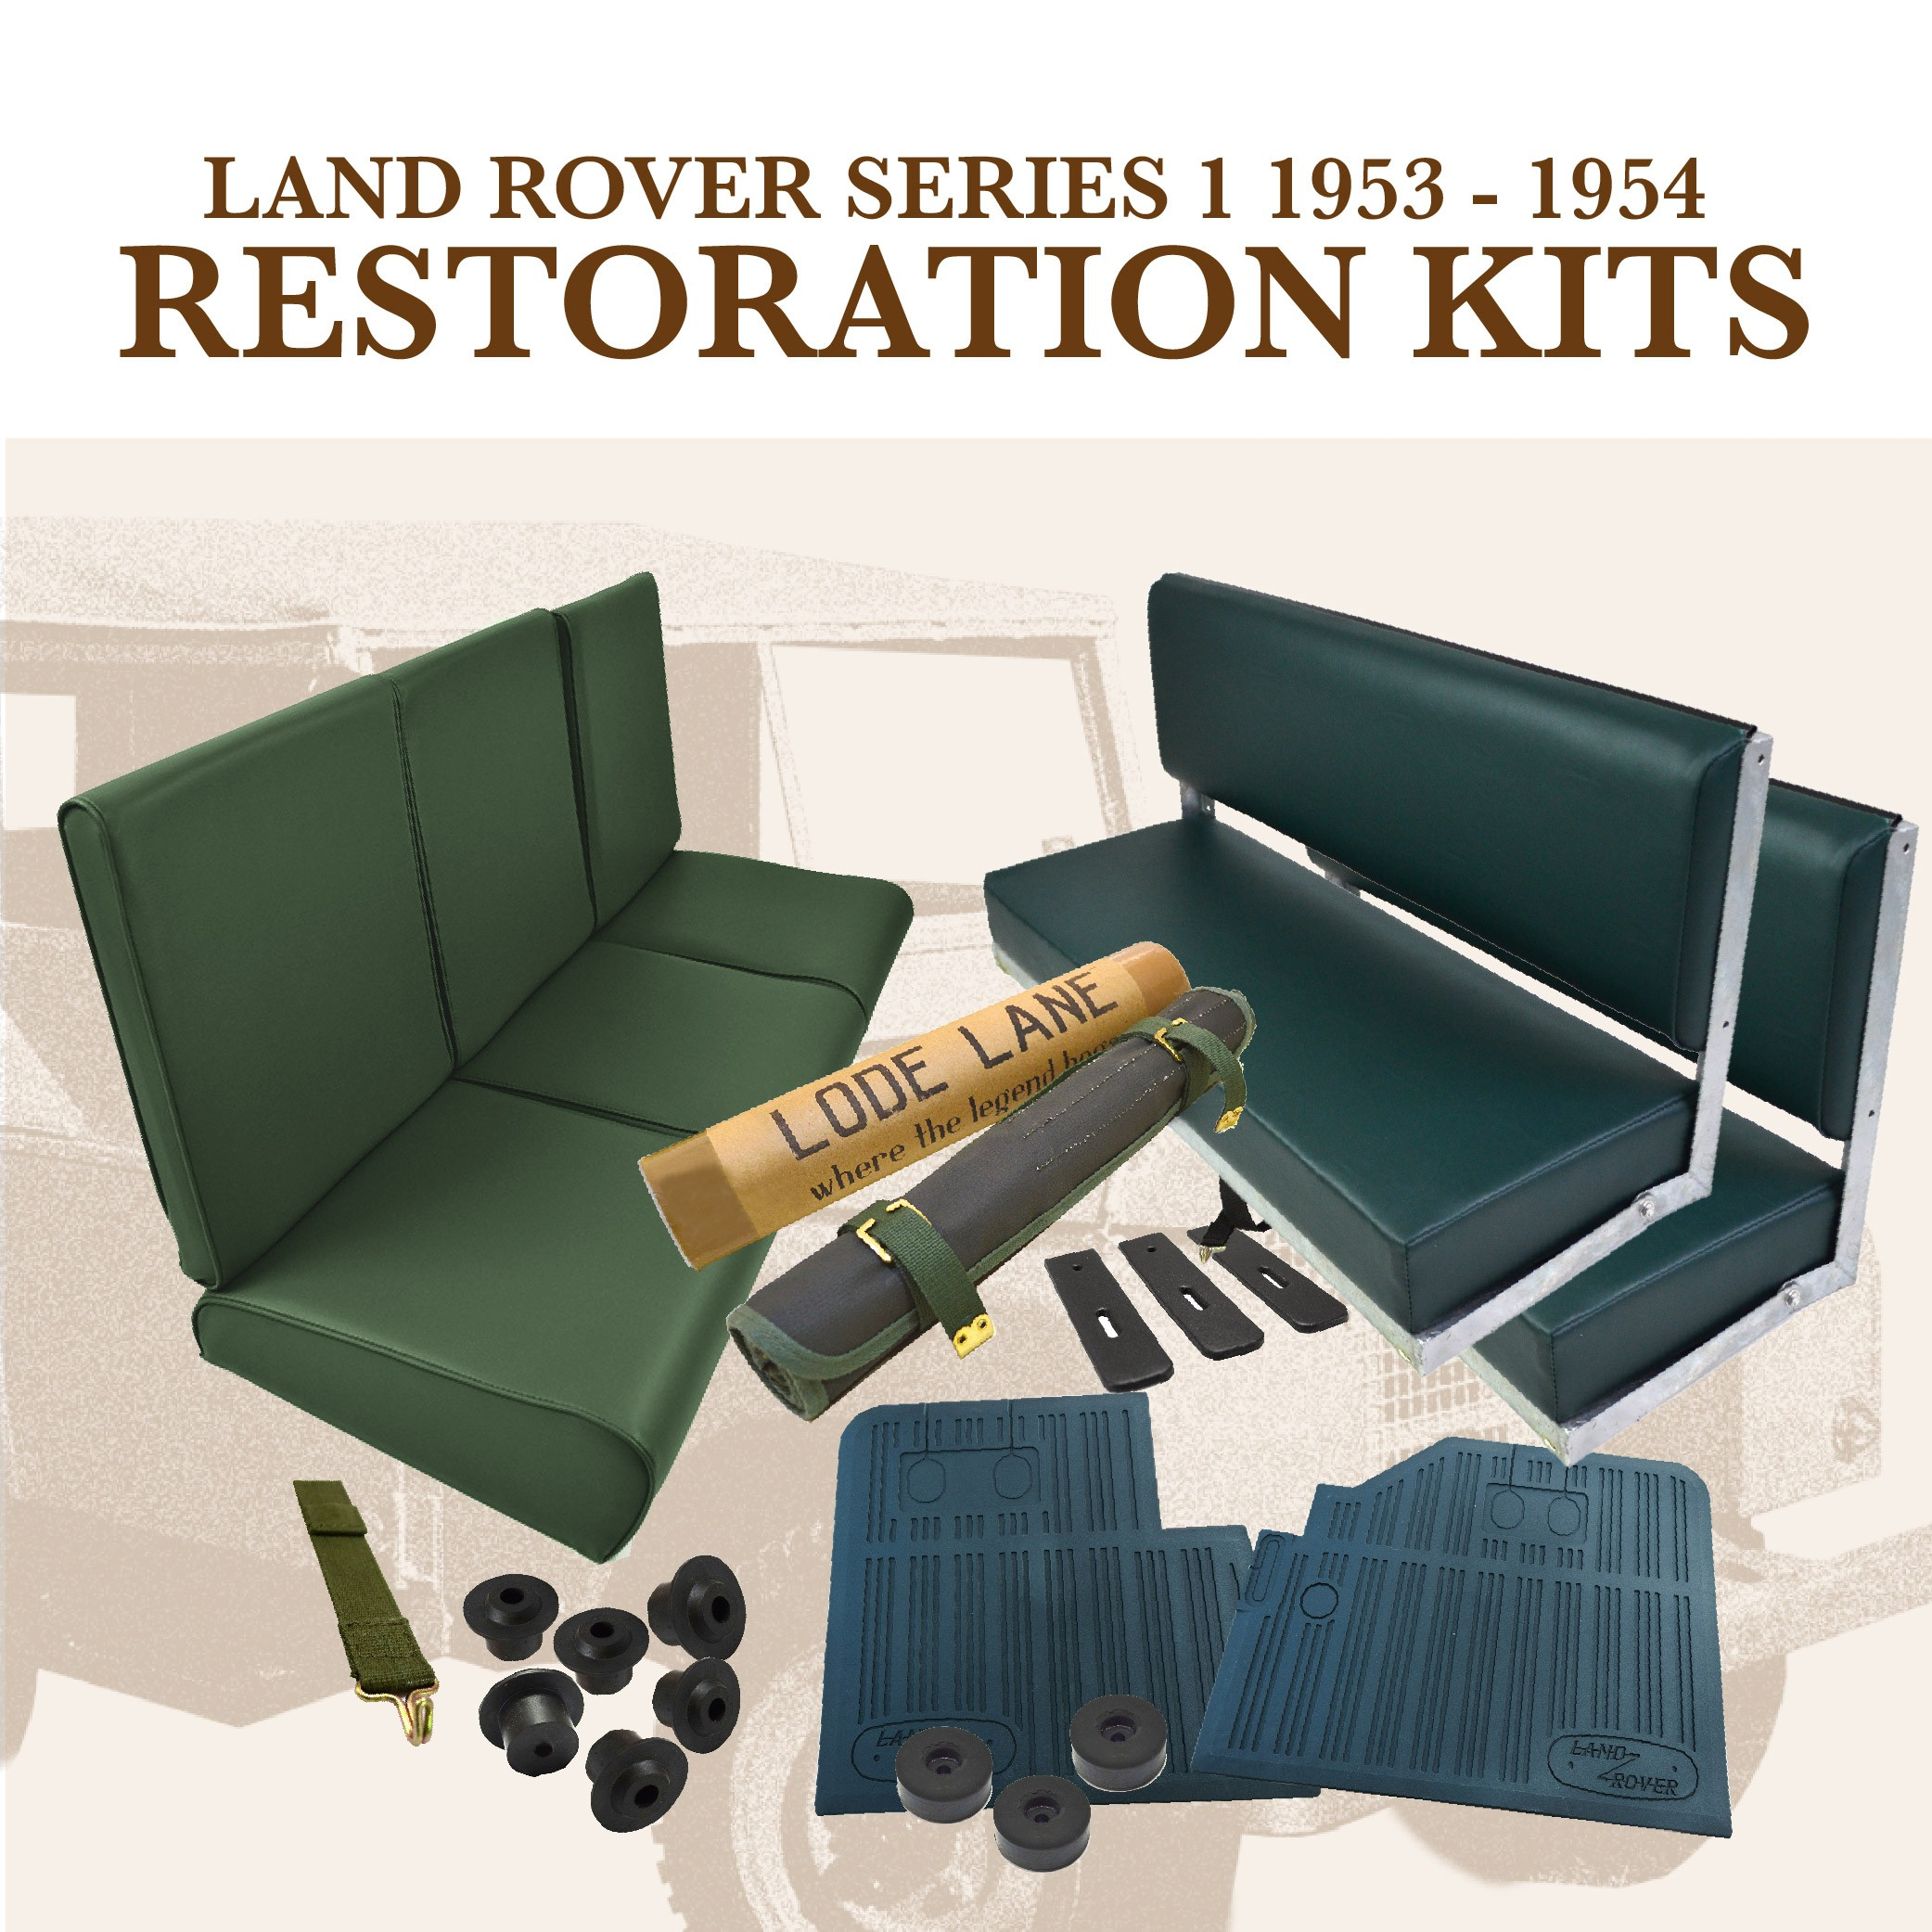 Interior restoration kits